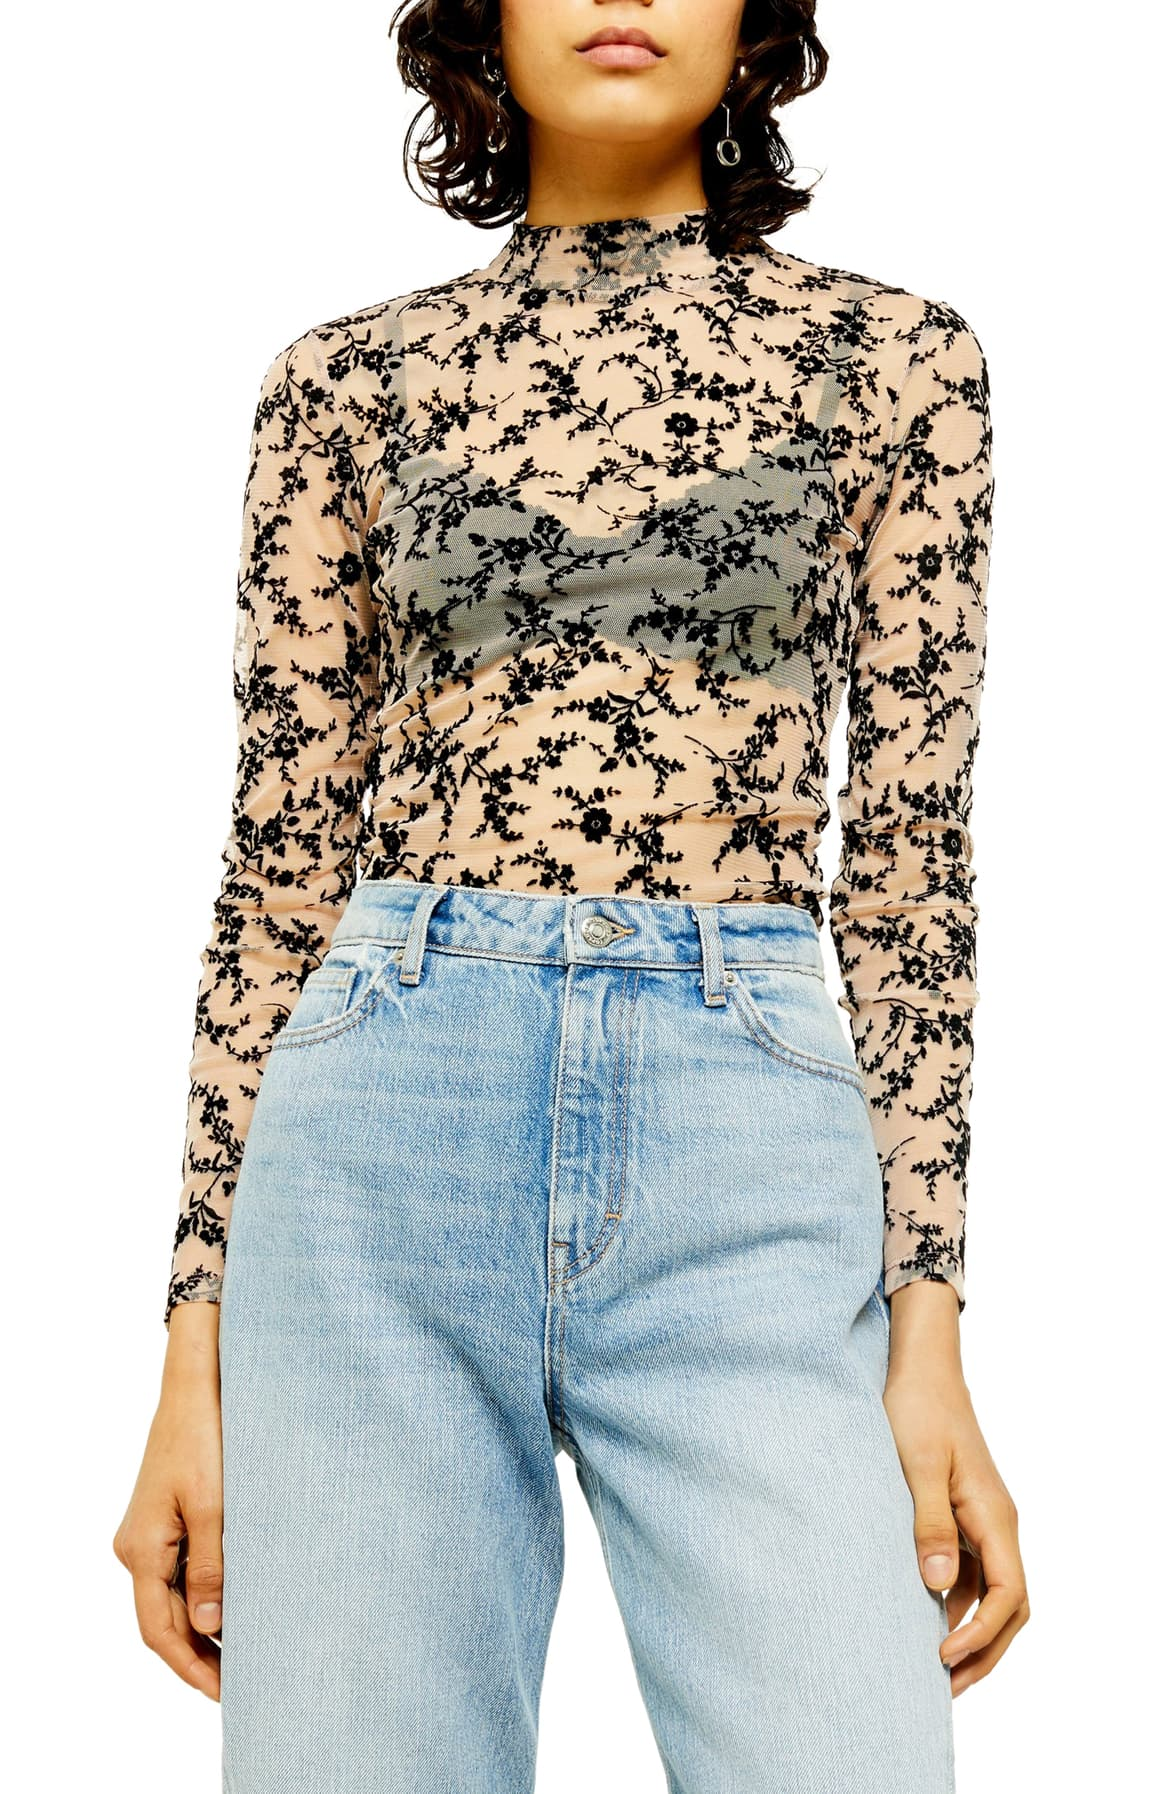 This bold print, mesh top screams the '80s! It's pretty charming if you ask me. $35 (Image: Nordstrom){ }